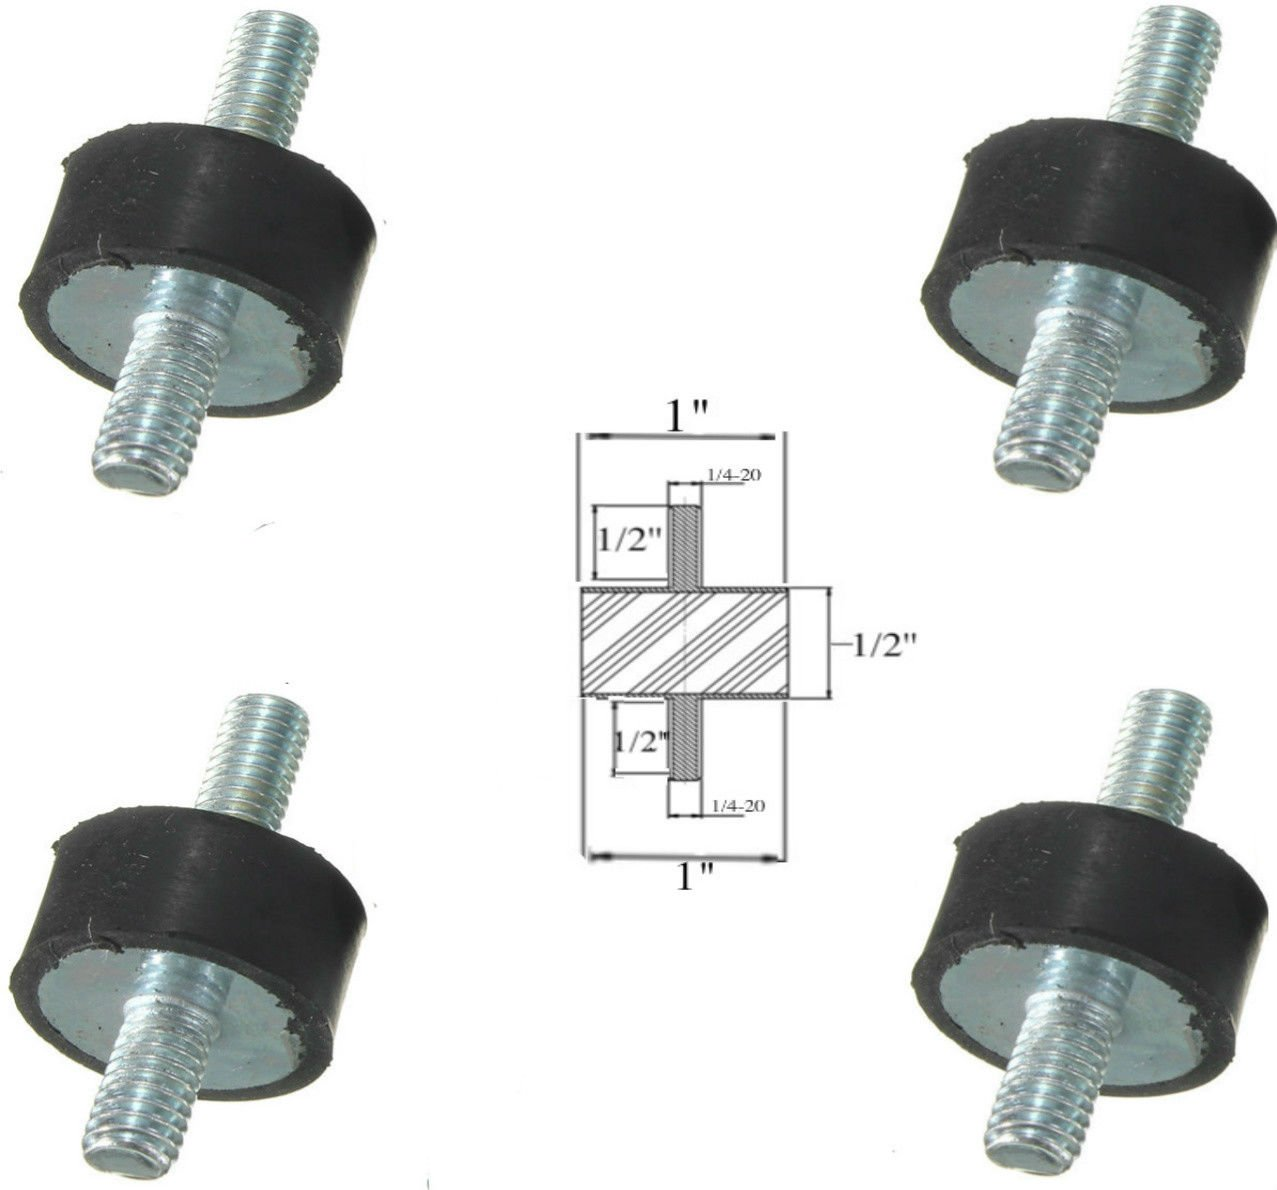 Lot of (4) Rubber Anti Vibration Isolator Mounts Rubber Height 1/2'' x 1'' Rubber Diameter - Studs 1/4-20 x 1/2'' Length